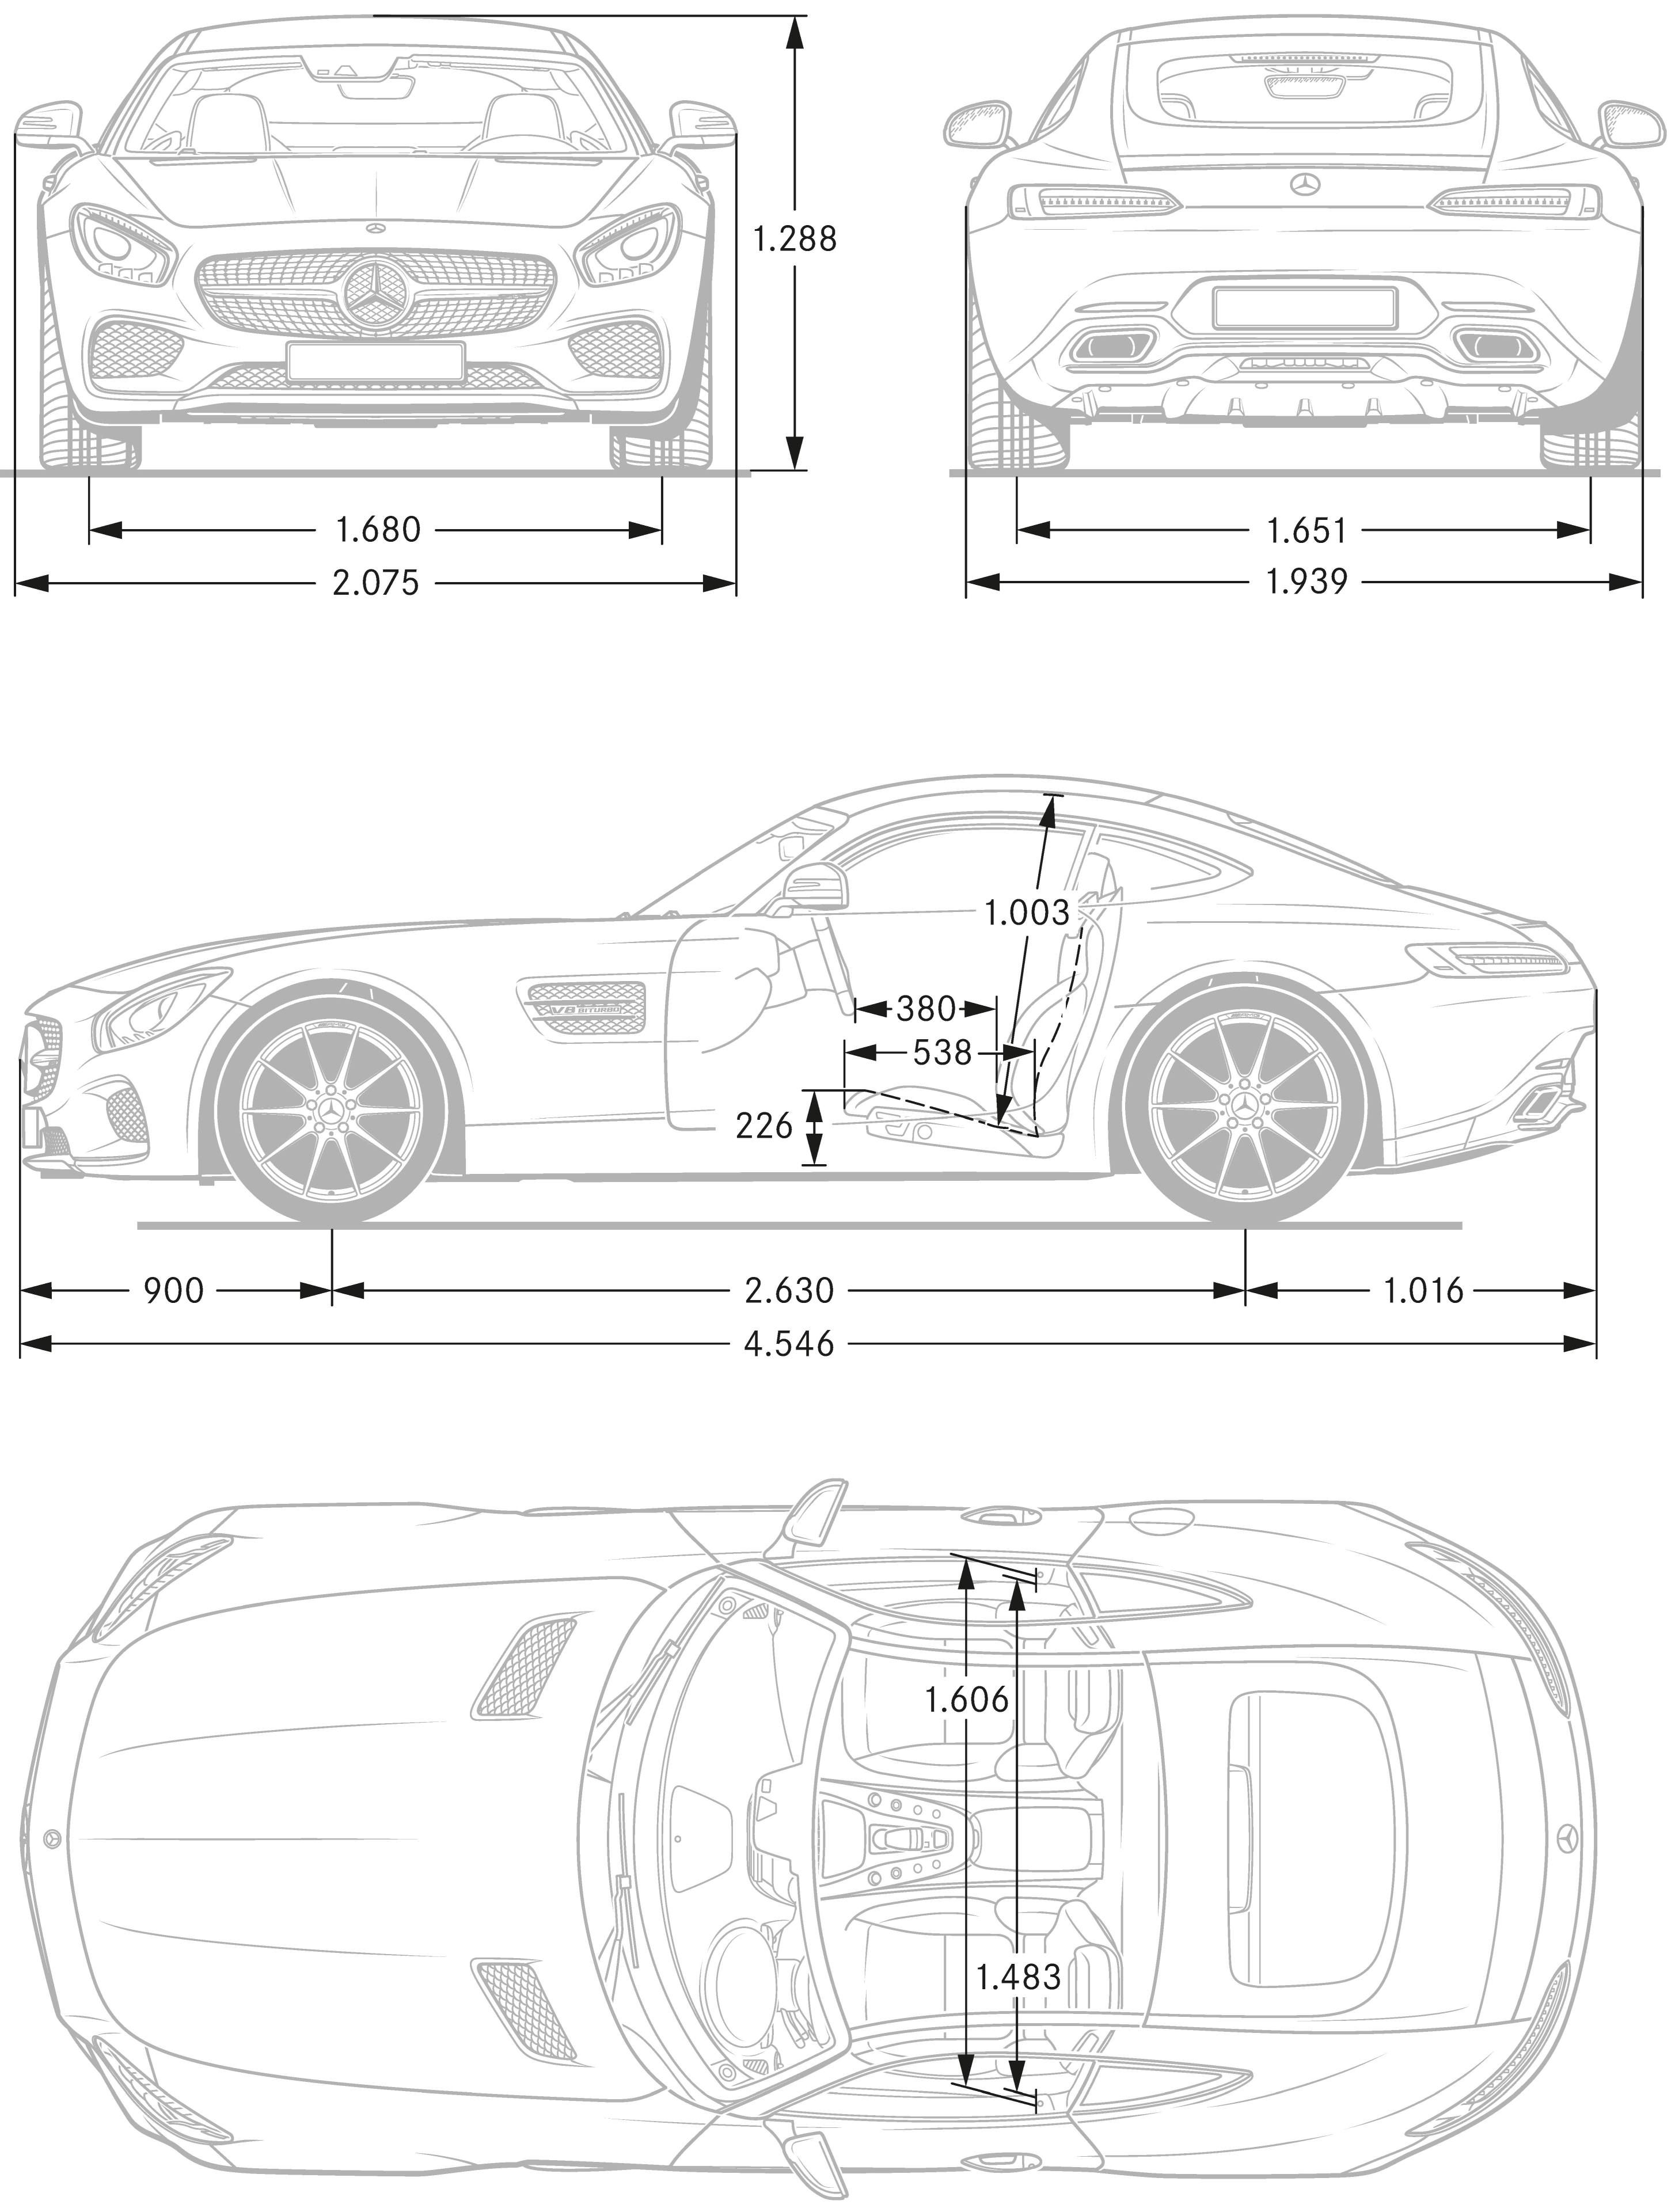 Httpsmcarsthreadsmercedes benz amg gt 201441474 car httpsmcarsthreadsmercedes benz amg gt 201441474 car cake templates pinterest mercedes benz benz and cars malvernweather Image collections